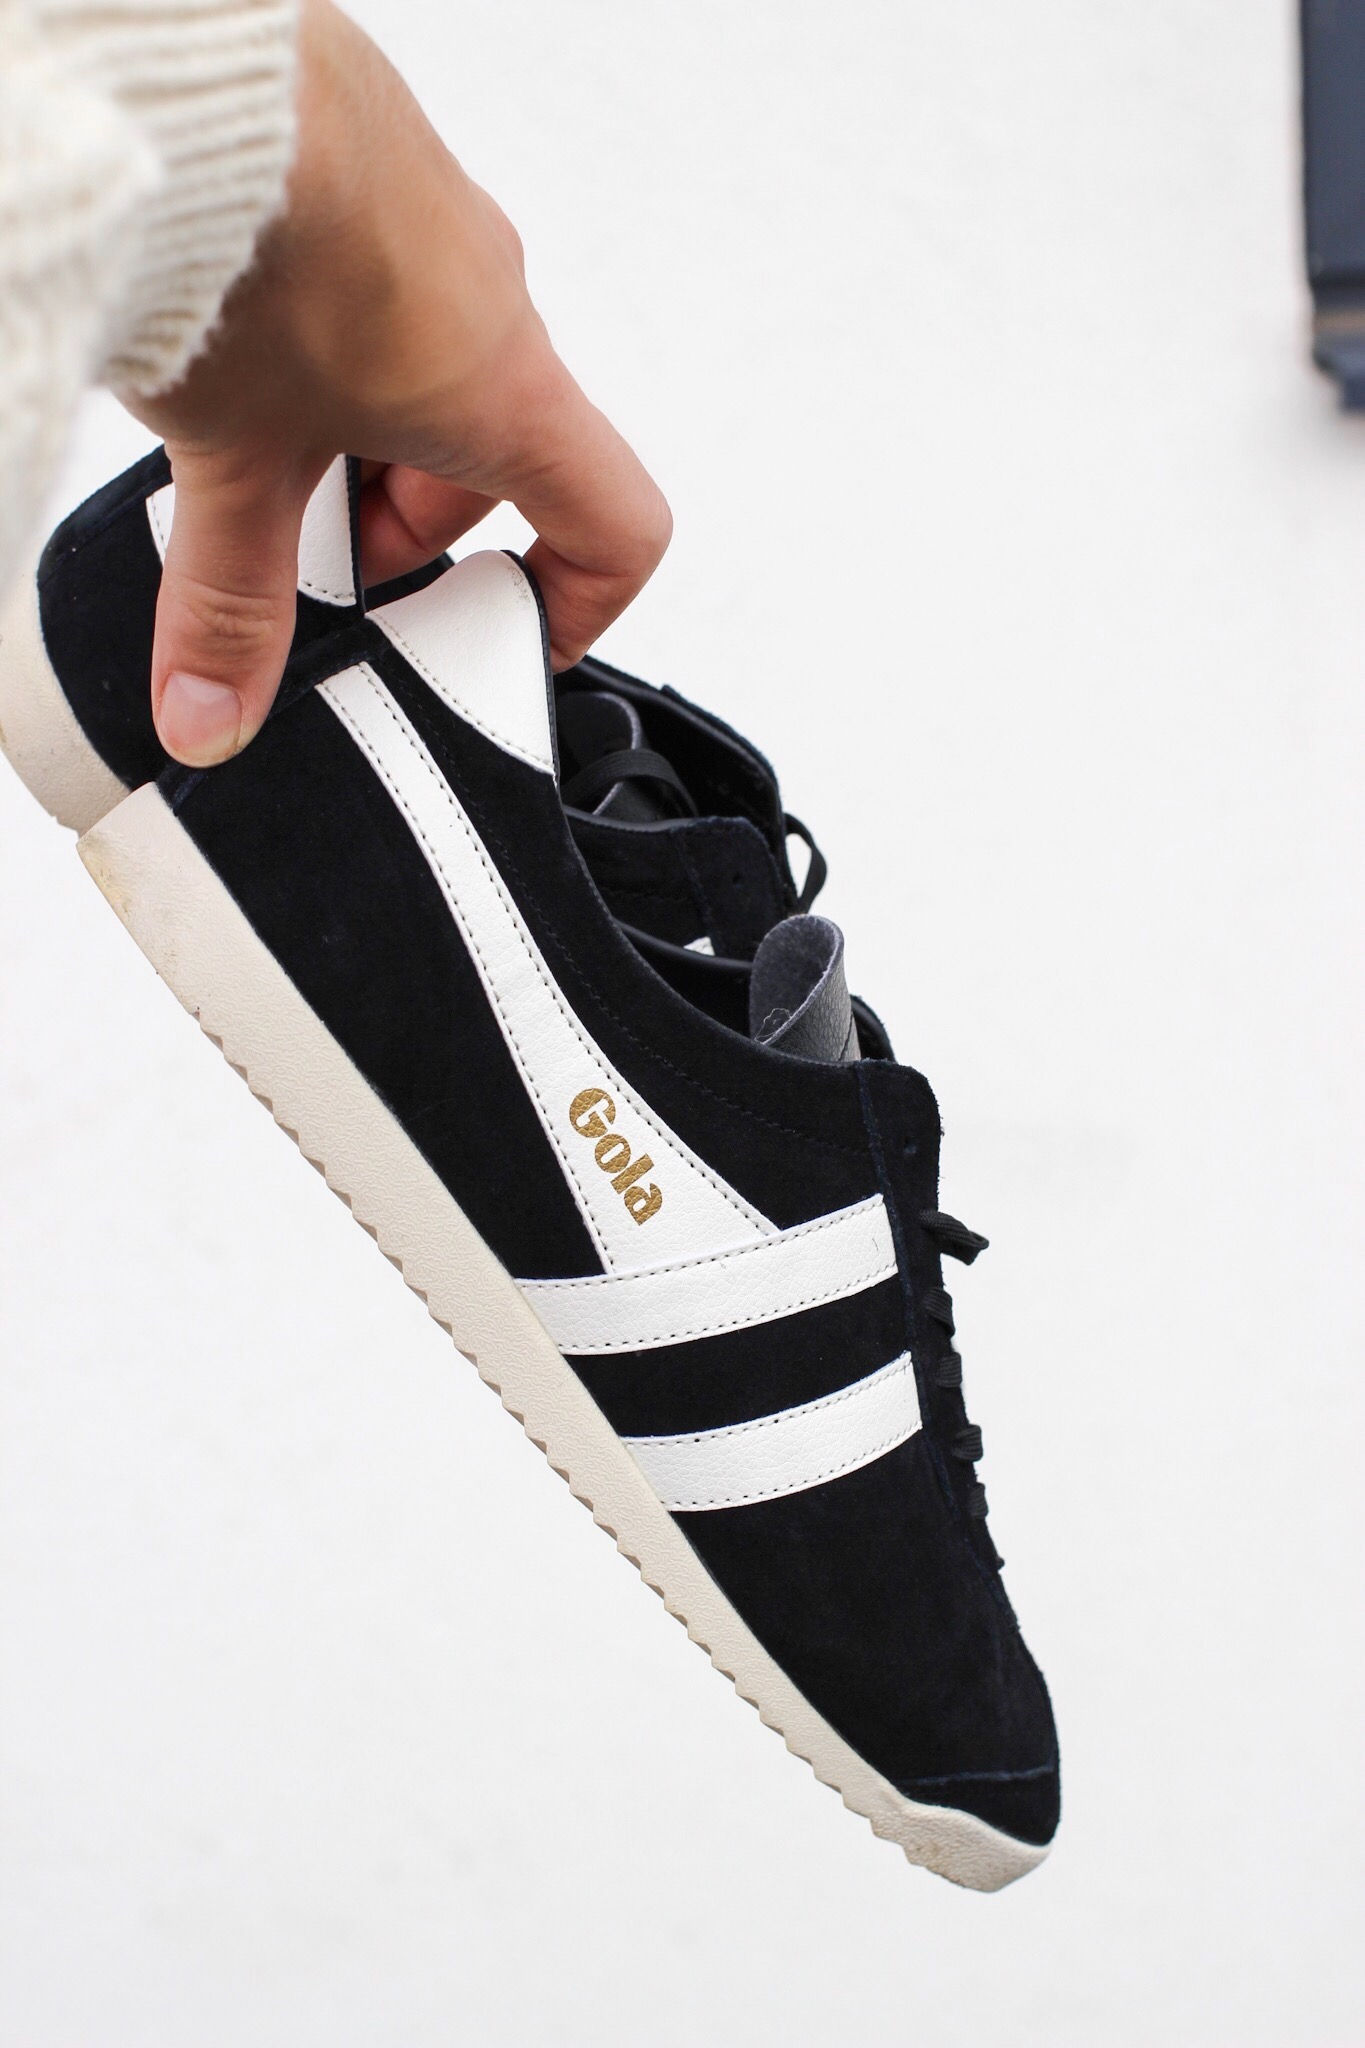 Gola Classics Suede Bullet in black and white from Manchester